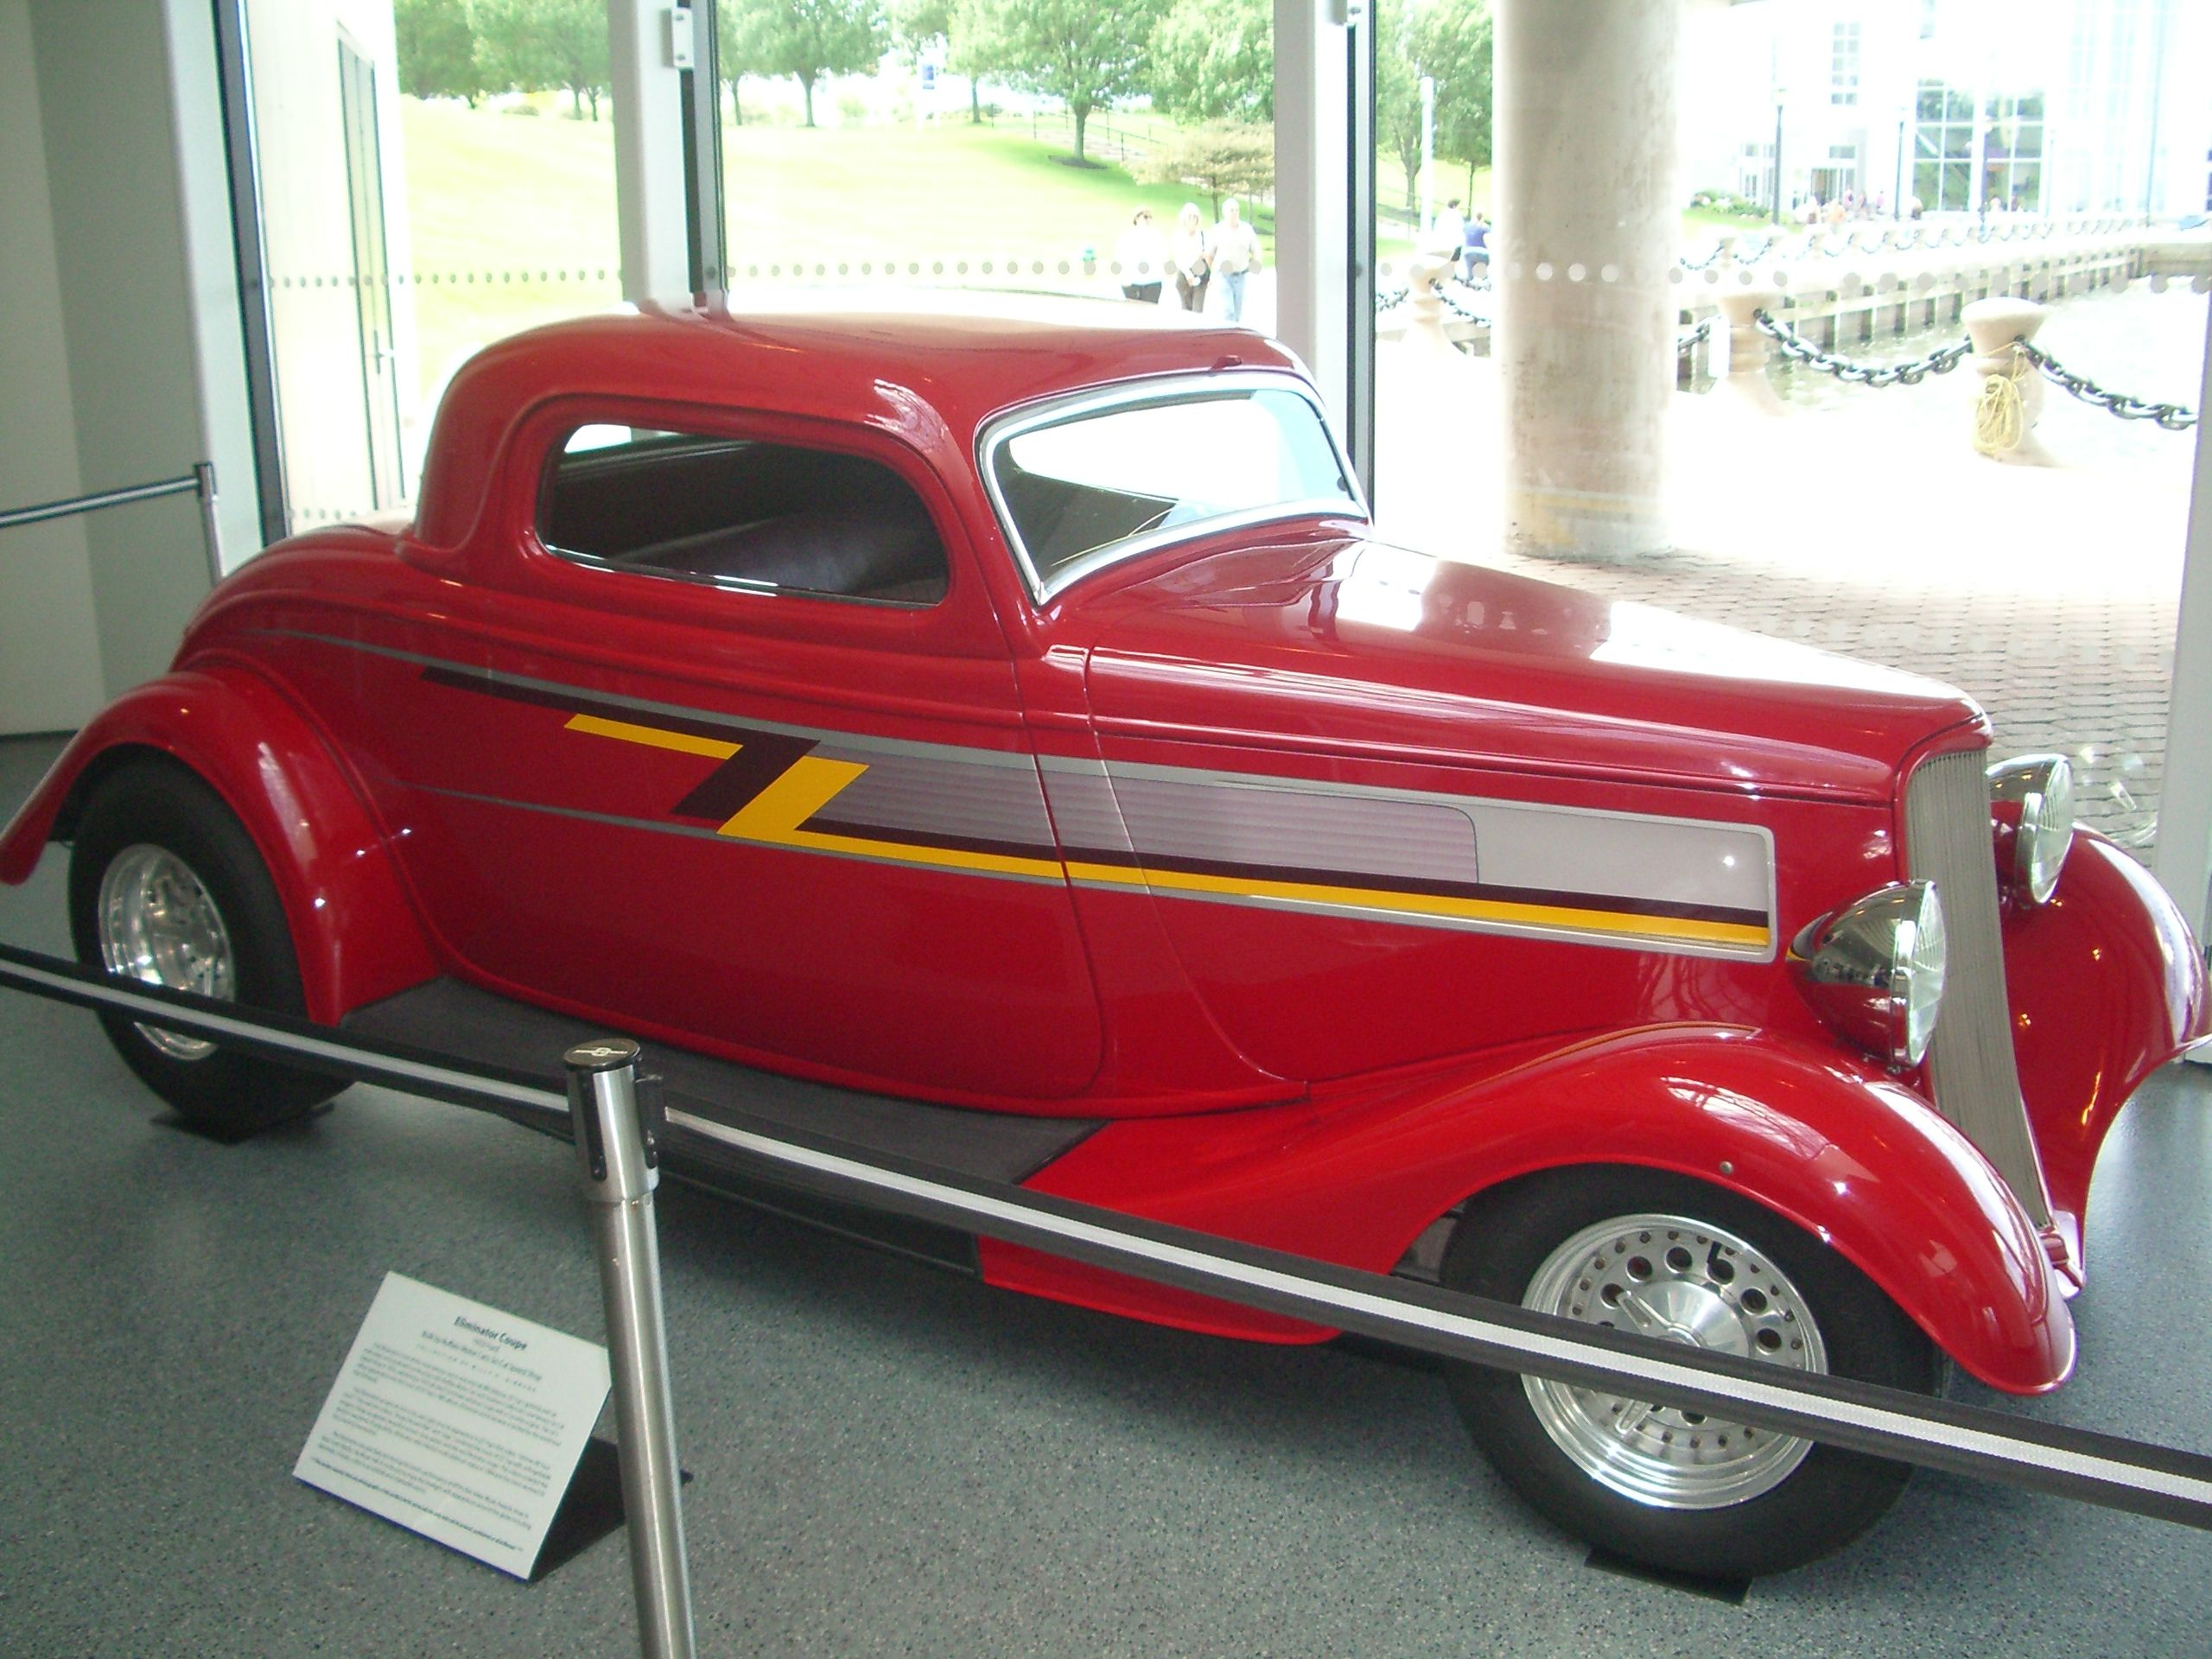 This zz top eliminator hot rod seems like the kind of car that a ...